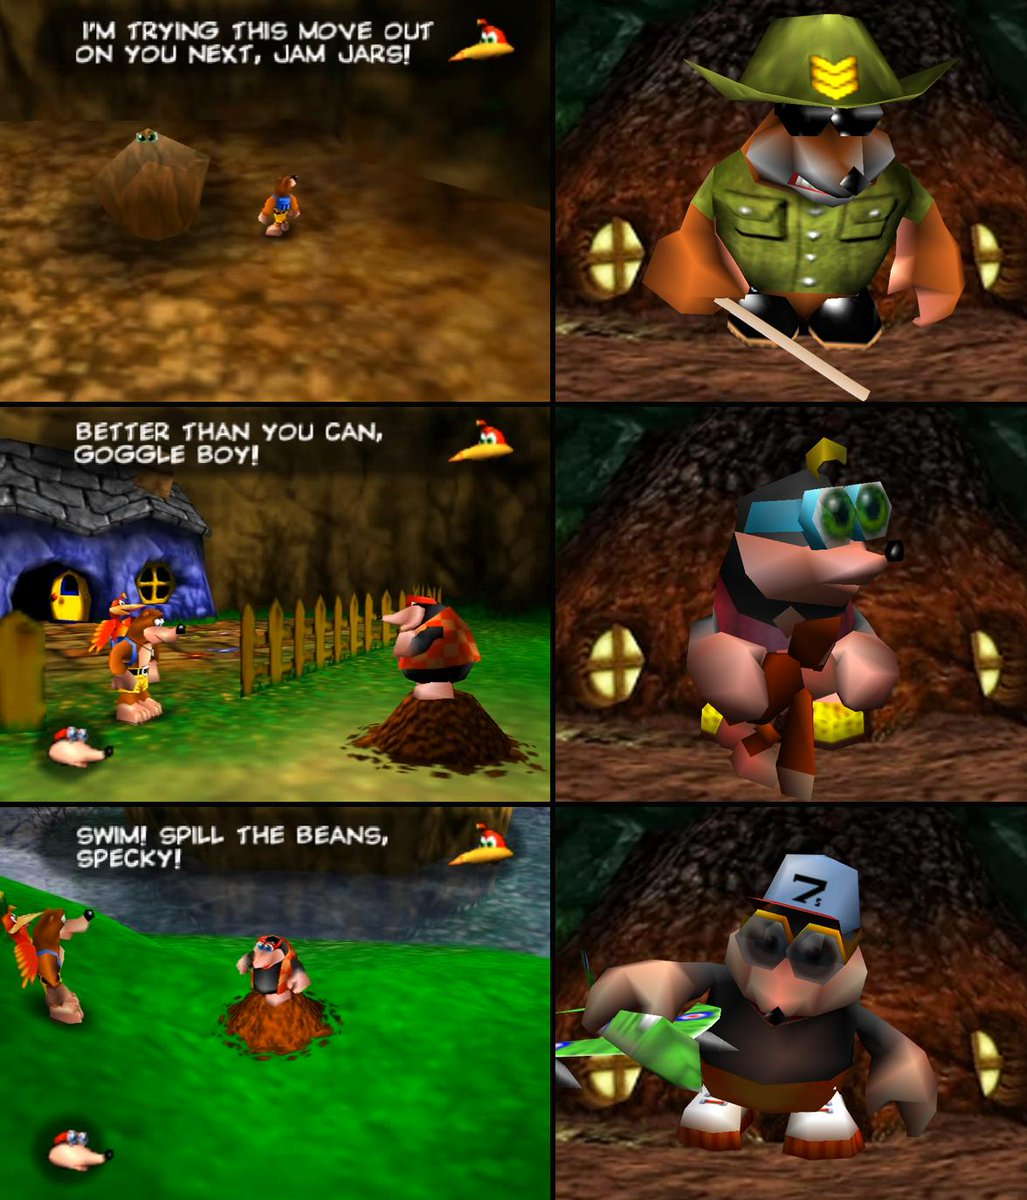 """Most of Bottles' family from Banjo-Tooie was named-dropped in the training sequence in the original Banjo-Kazooie... by way of Kazooie's insults towards Bottles. """"Jam jars"""" was actually his brother Jamjars, """"goggle boy"""" his daughter Goggles and """"specky"""" his son Speccy. #DKUFacts<br>http://pic.twitter.com/ispBBWiIyN"""